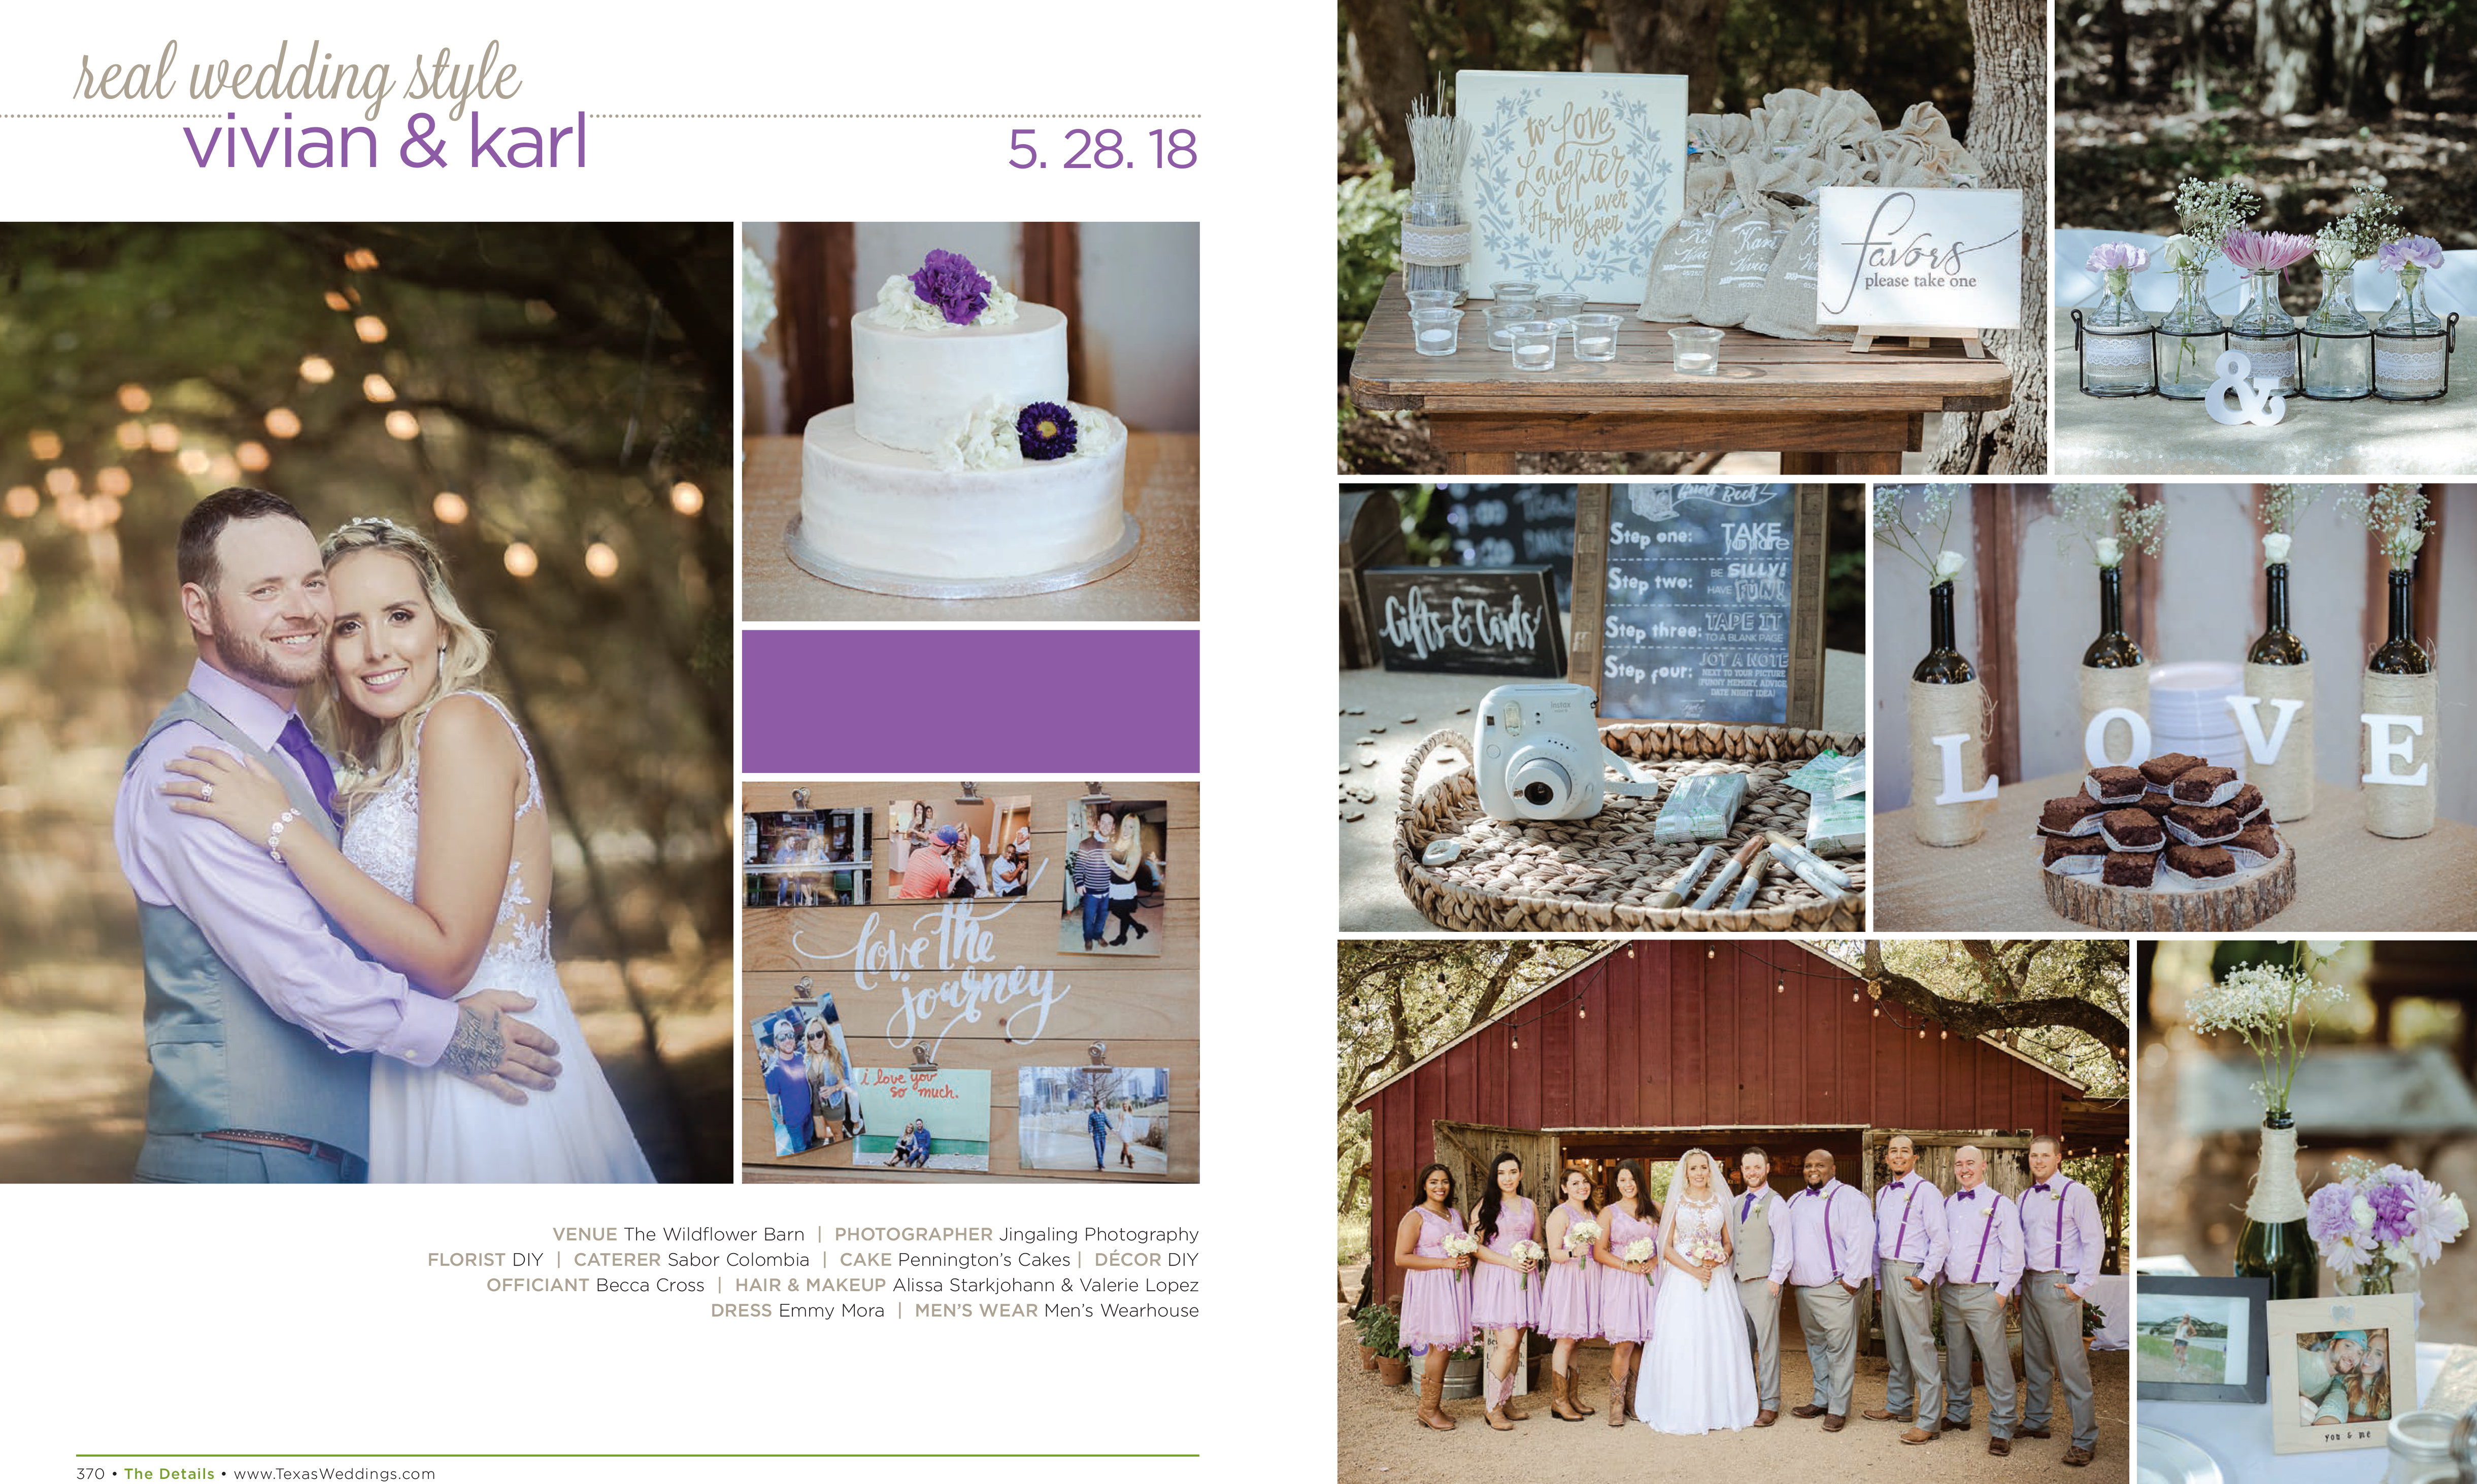 Vivian & Karl in their Real Wedding Page in the Spring/Summer 2019 Texas Wedding Guide